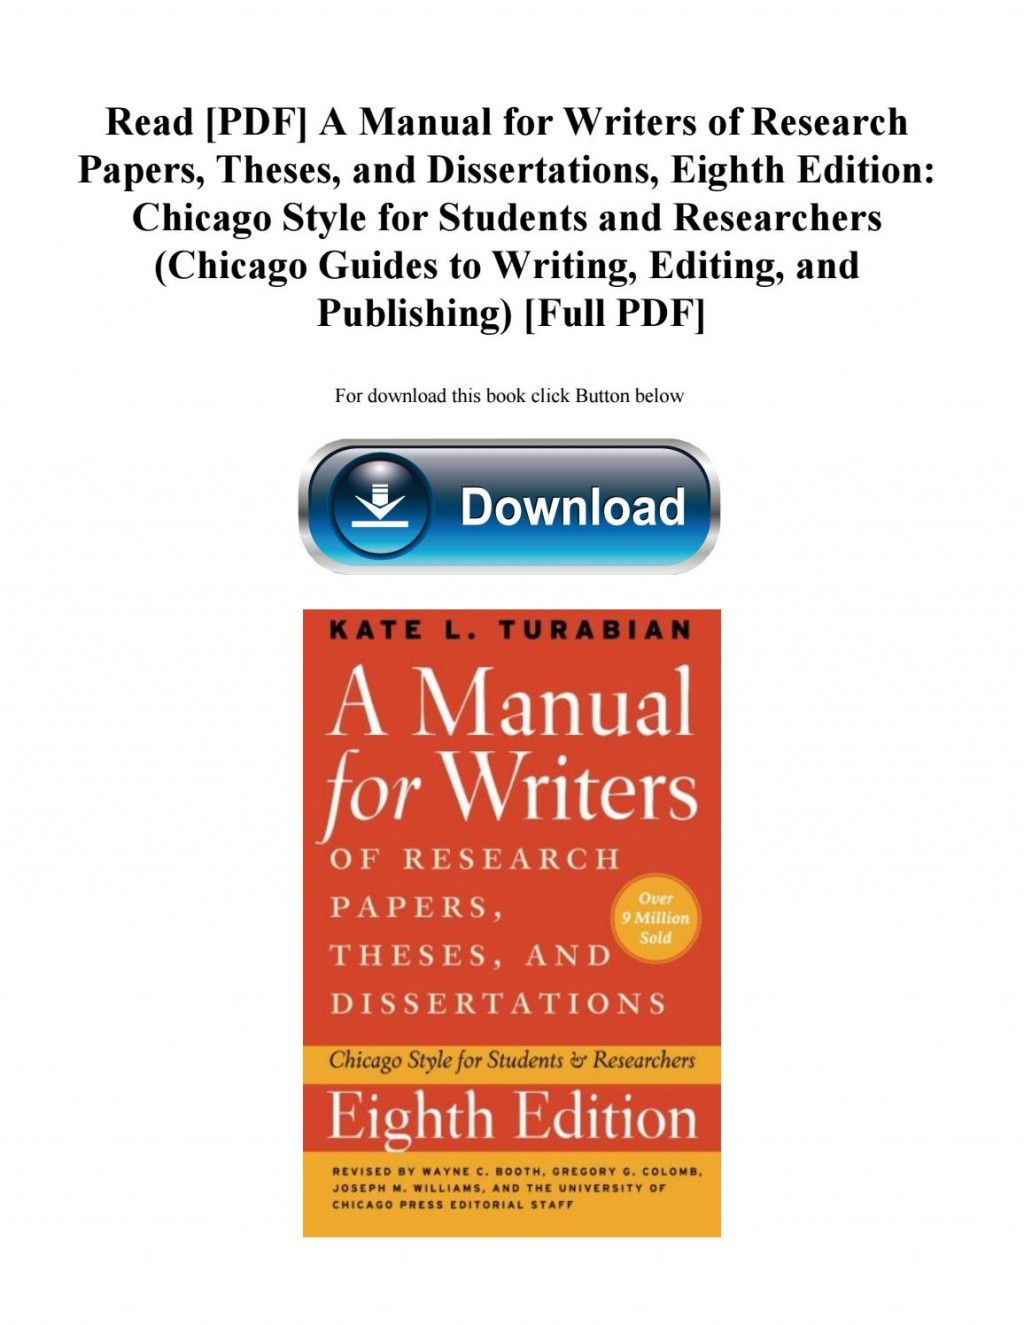 004 Manual For Writers Of Researchs Theses And Dissertations 8th Edition Pdf Page 1 Magnificent A Research Papers Large